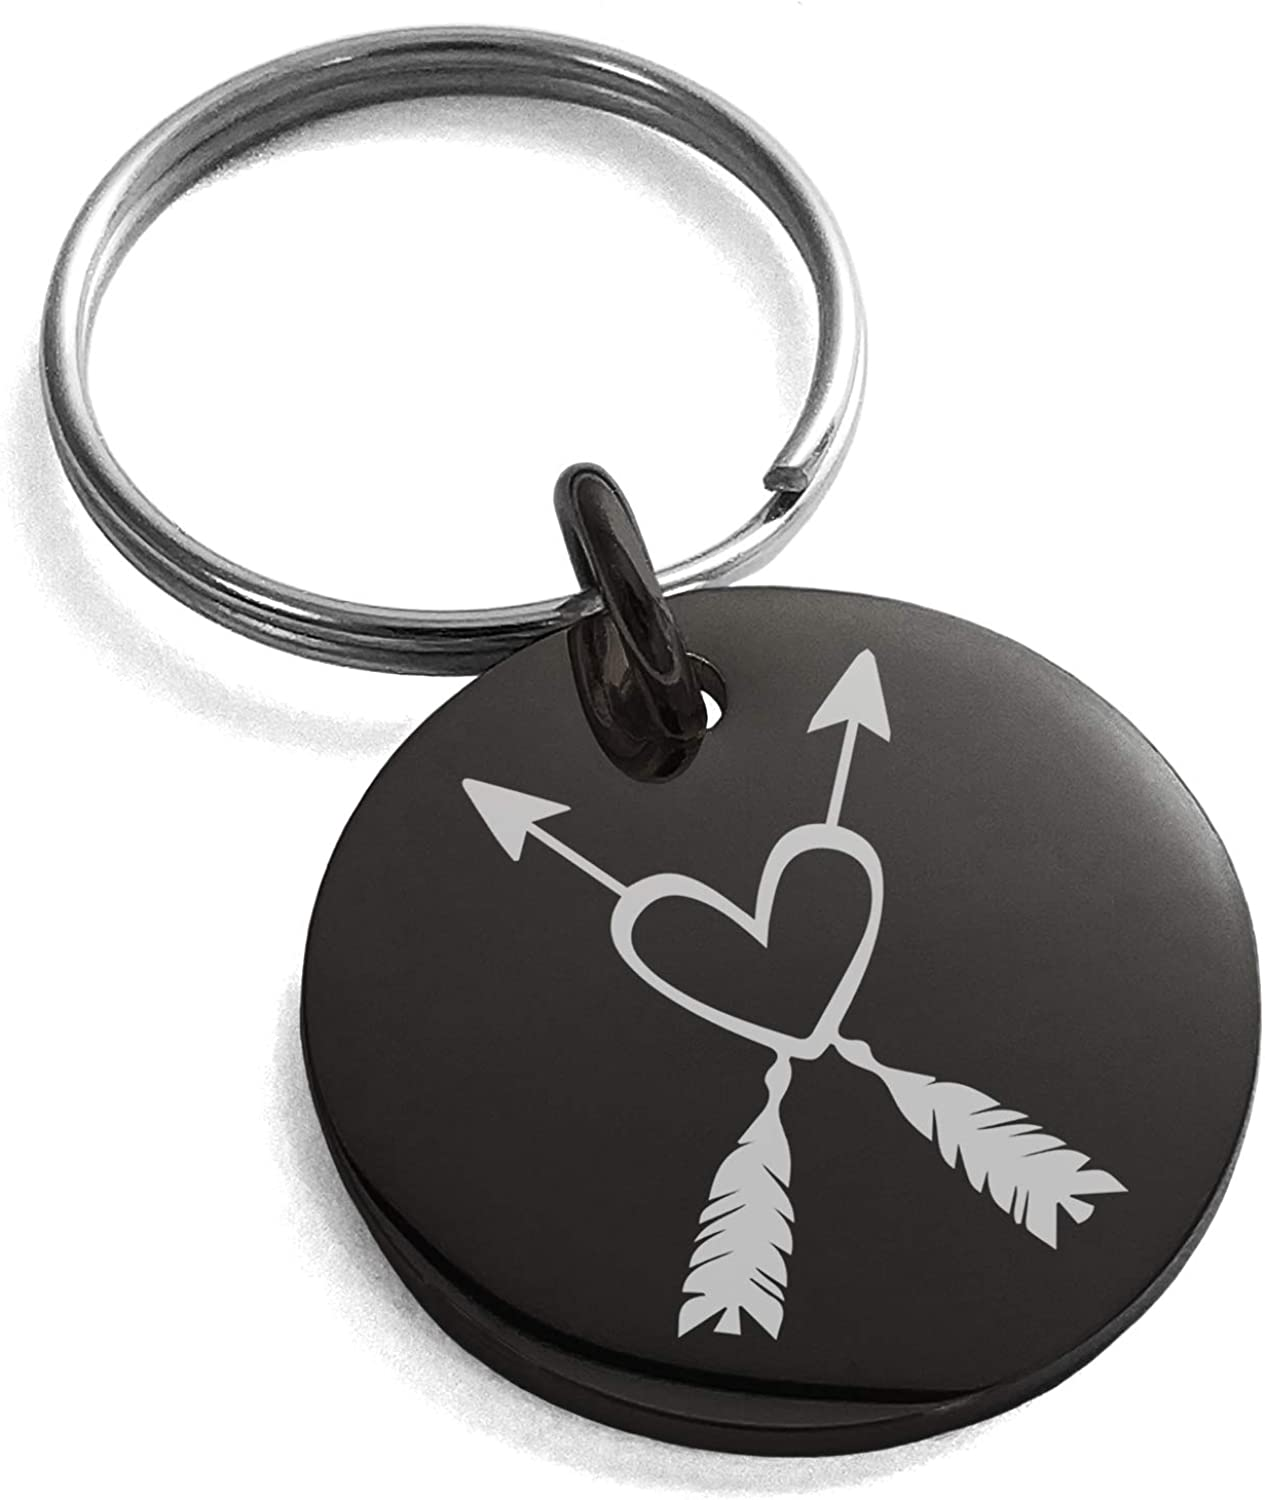 Tioneer Stainless Steel Heart + Arrows Small Medallion Circle Charm Keychain Keyring